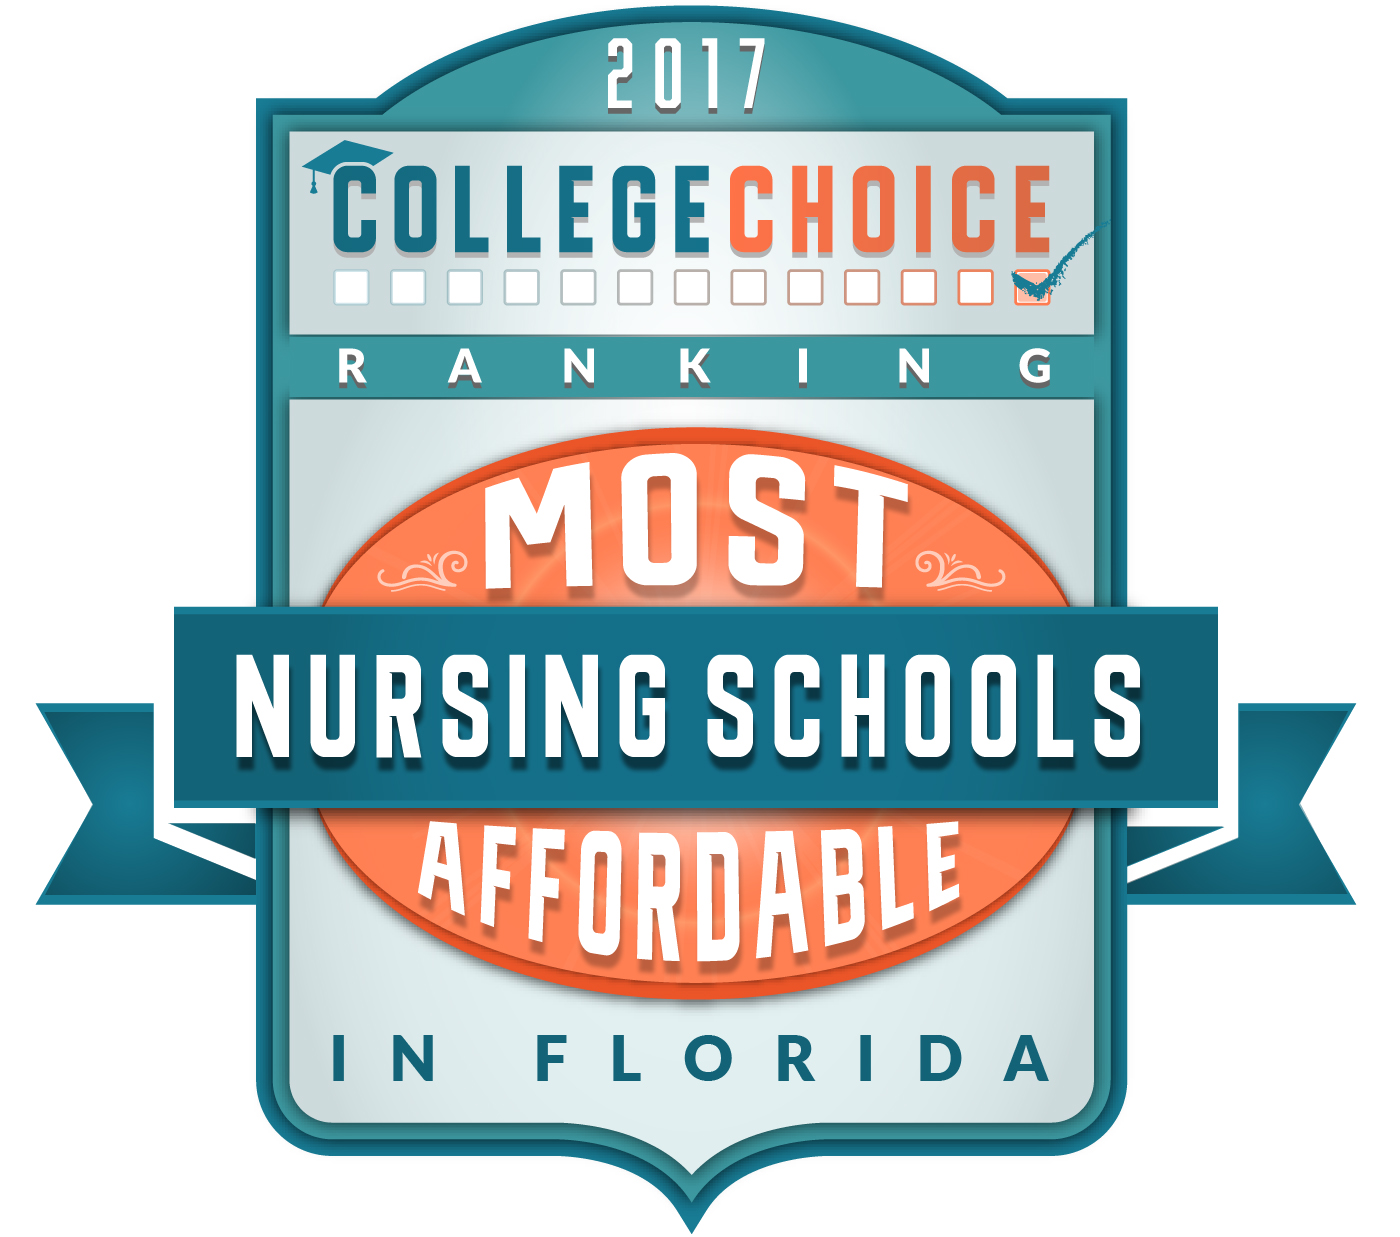 most affordable nursing schools in florida